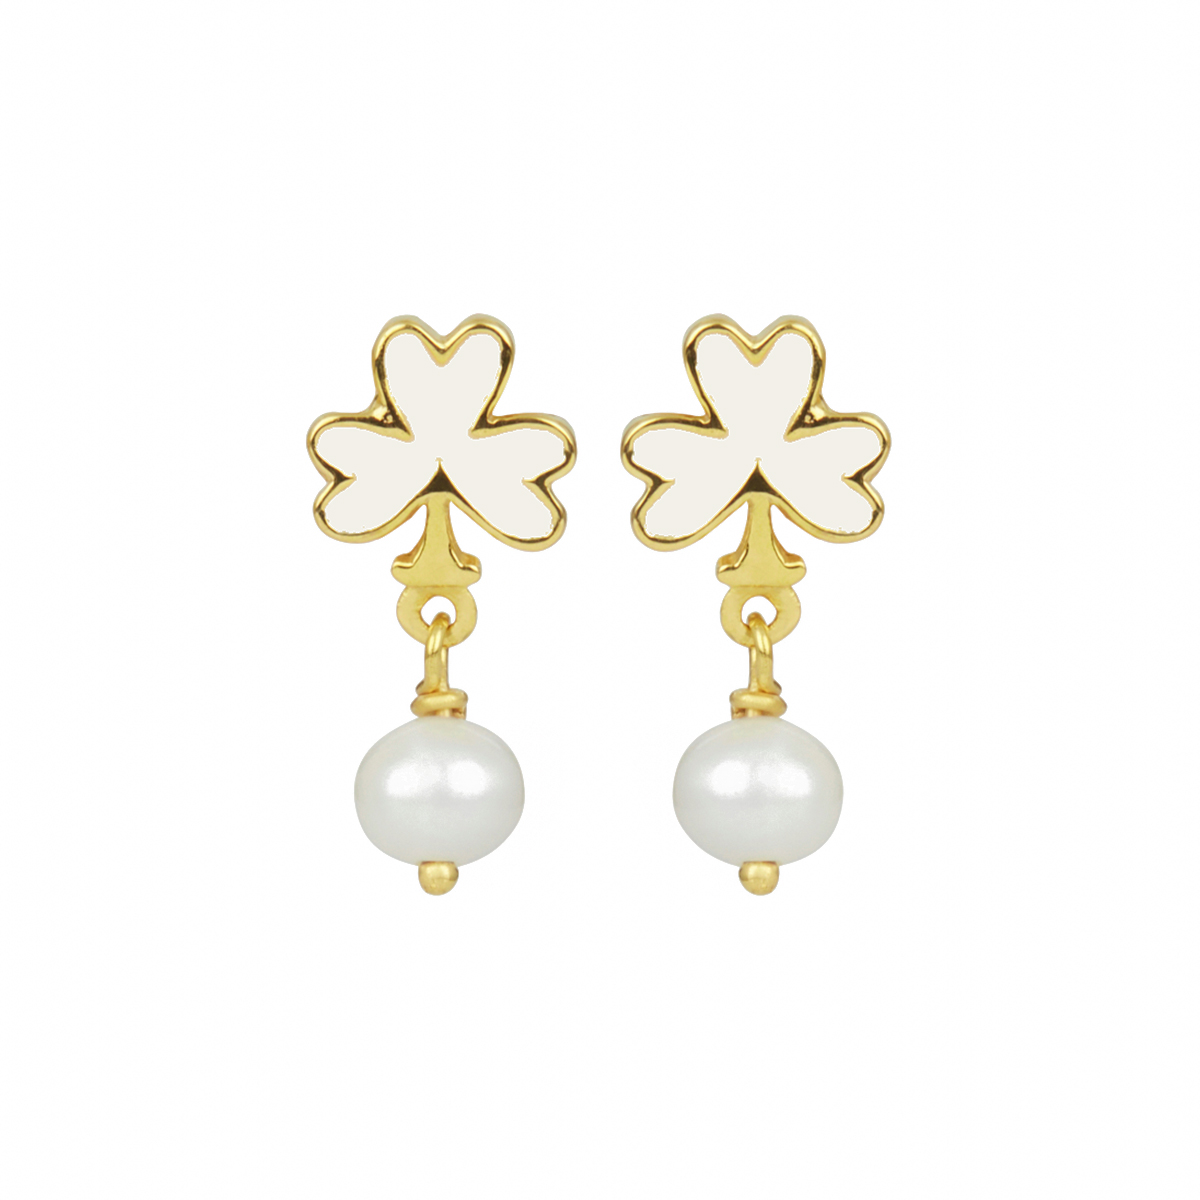 White club and pearl stud earrings by Ottoman Hands